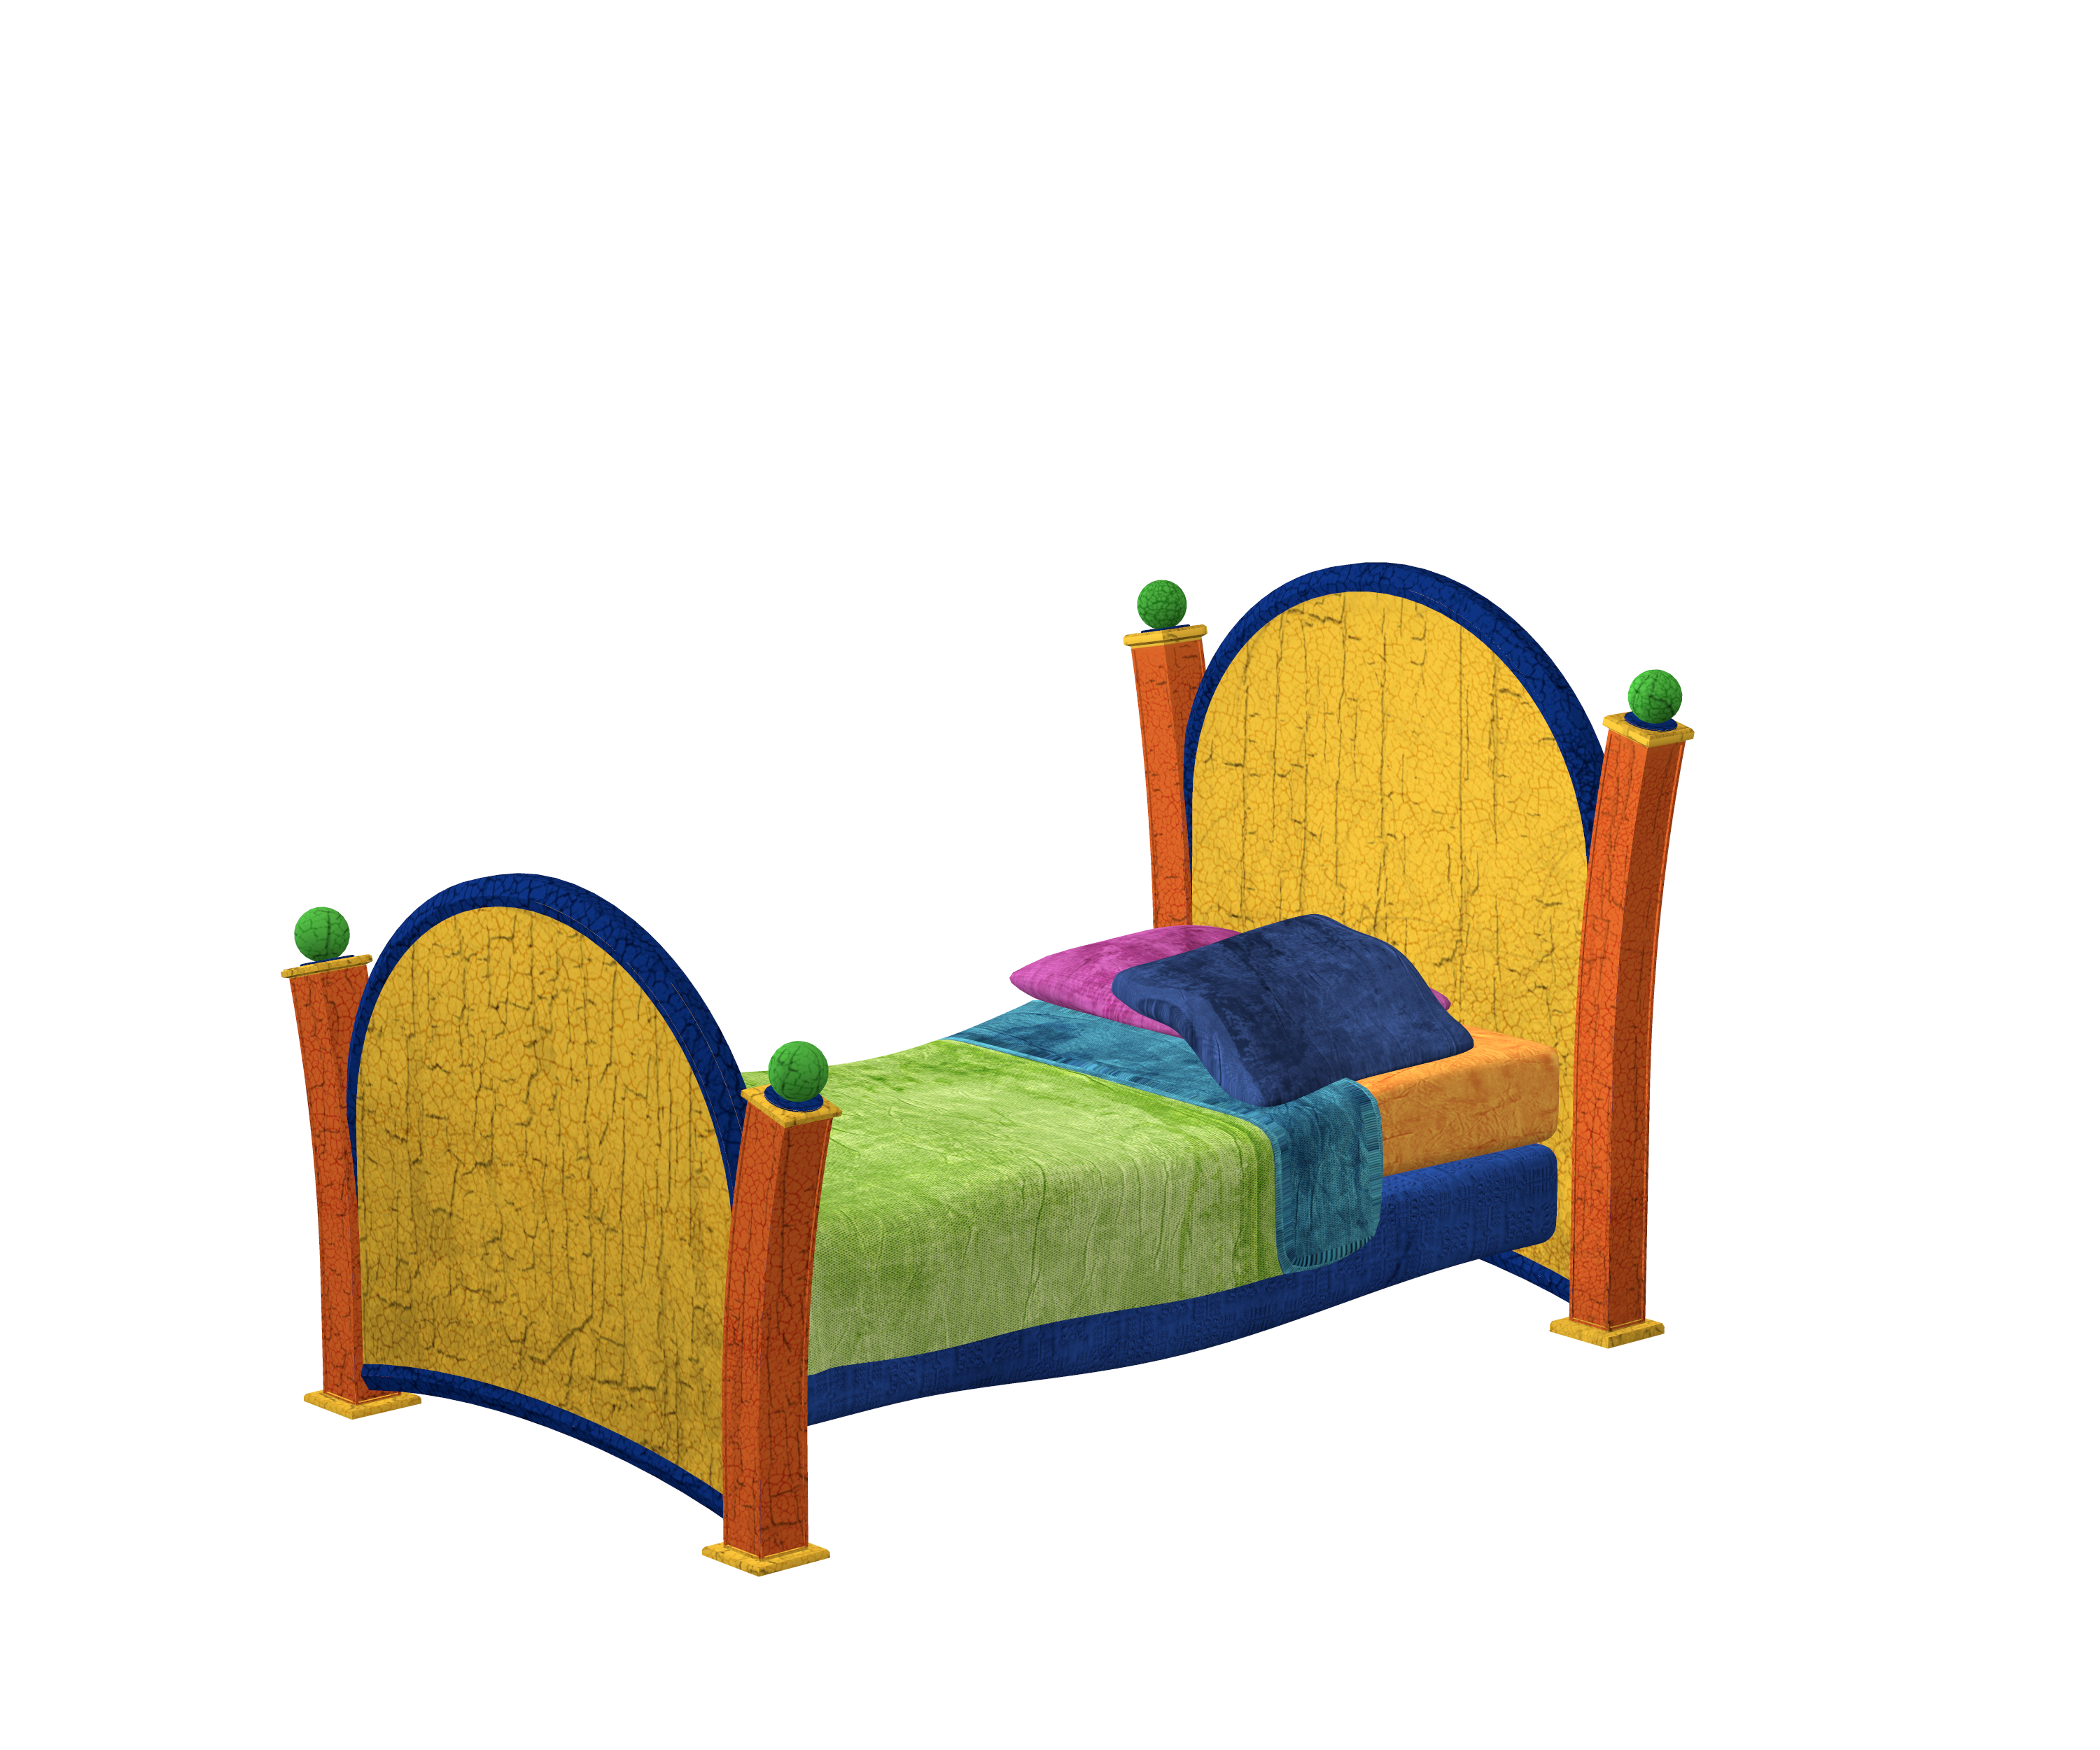 3D Model of a bed image - Free stock photo - Public Domain ...